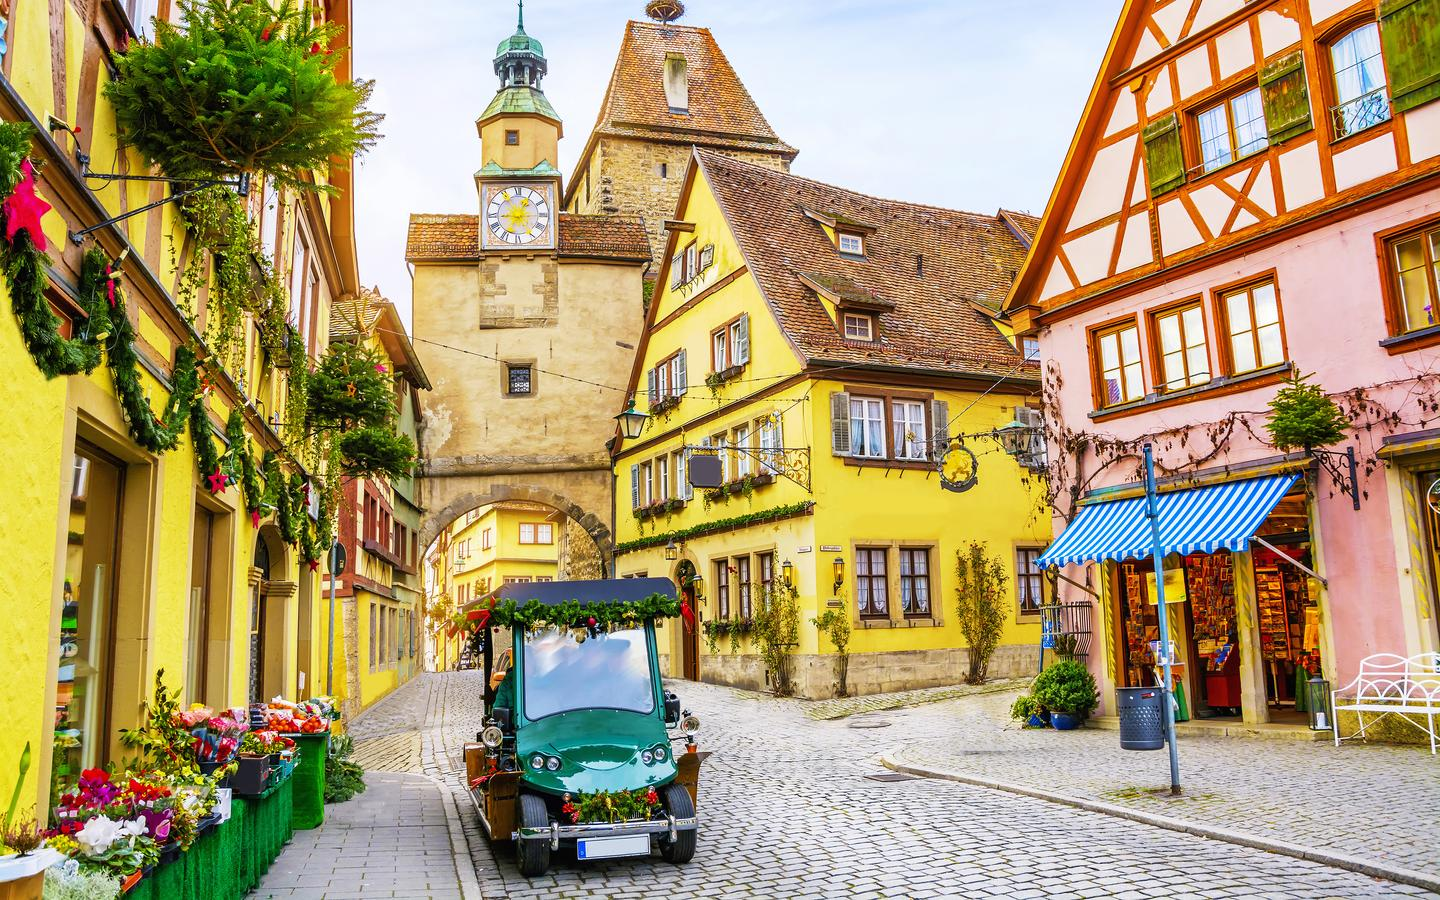 Hotels in Rothenburg ob der Tauber